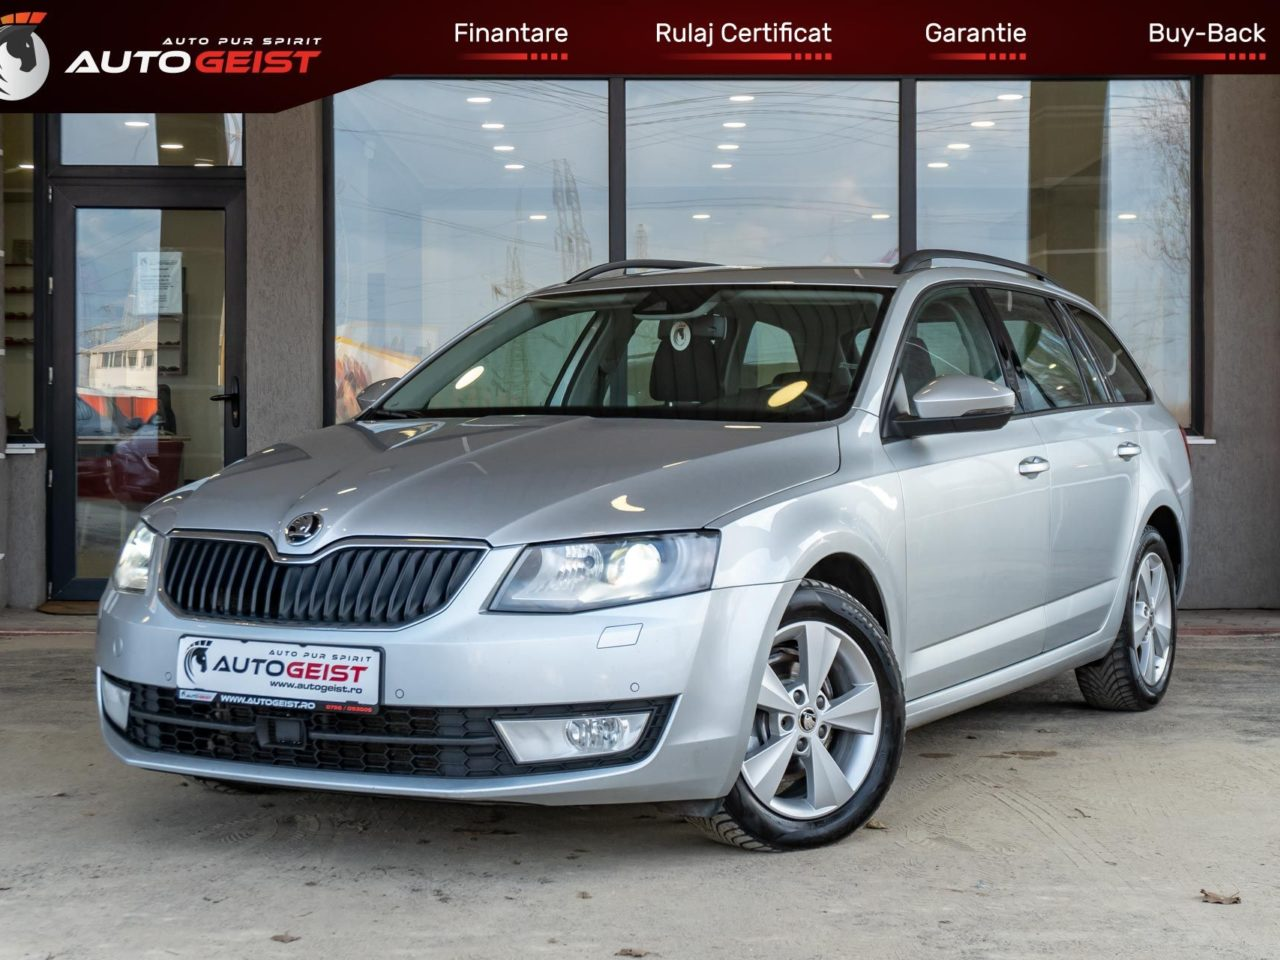 Skoda-Octavia-Break-05267